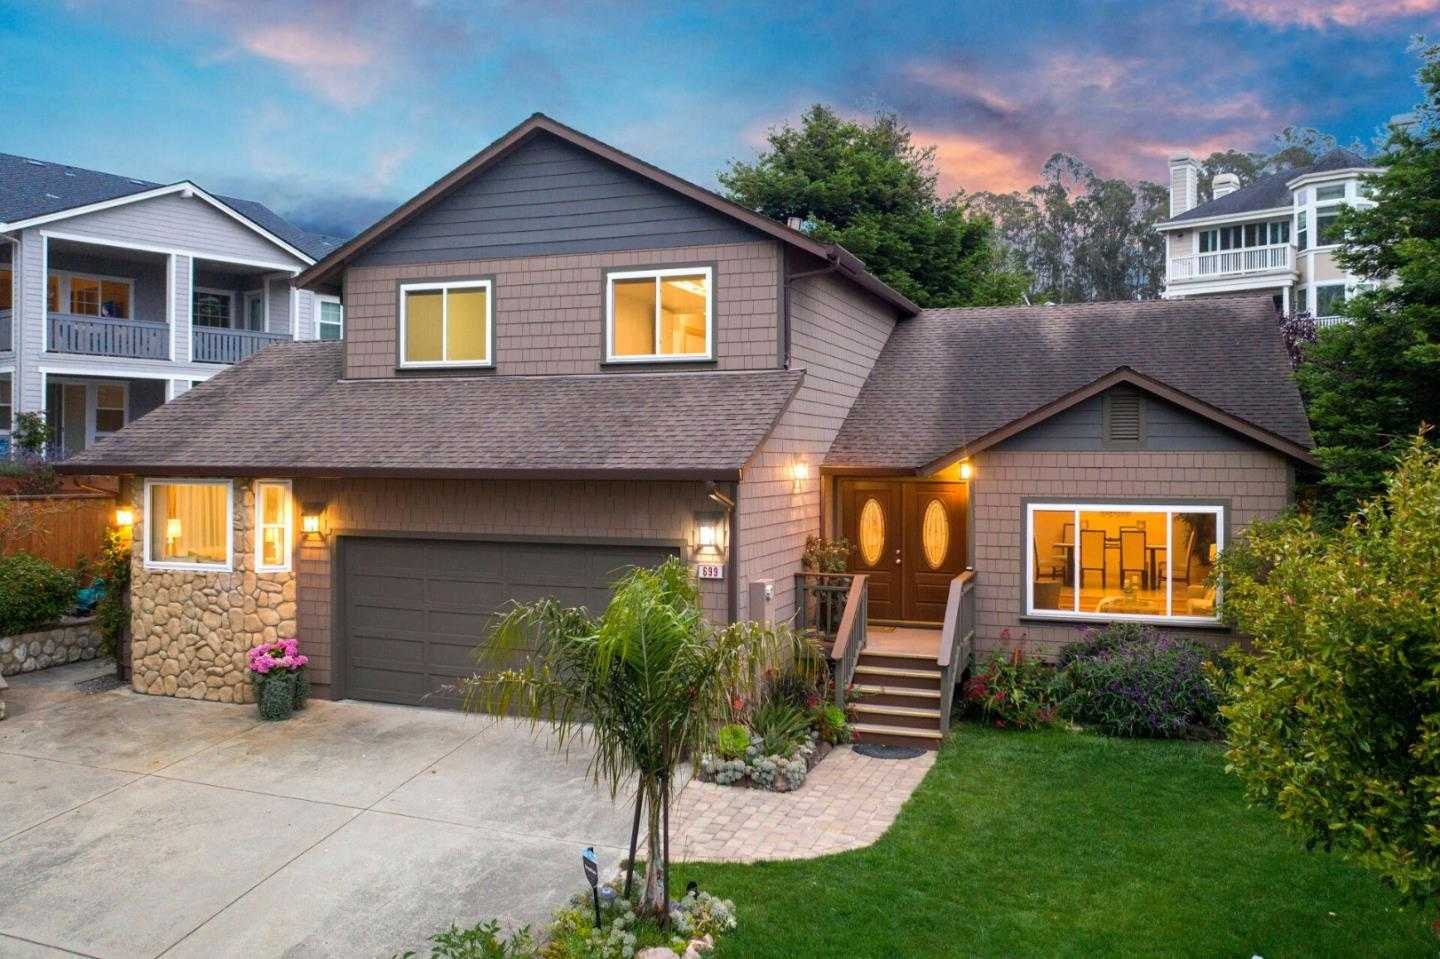 $1,499,000 - 5Br/3Ba -  for Sale in Half Moon Bay